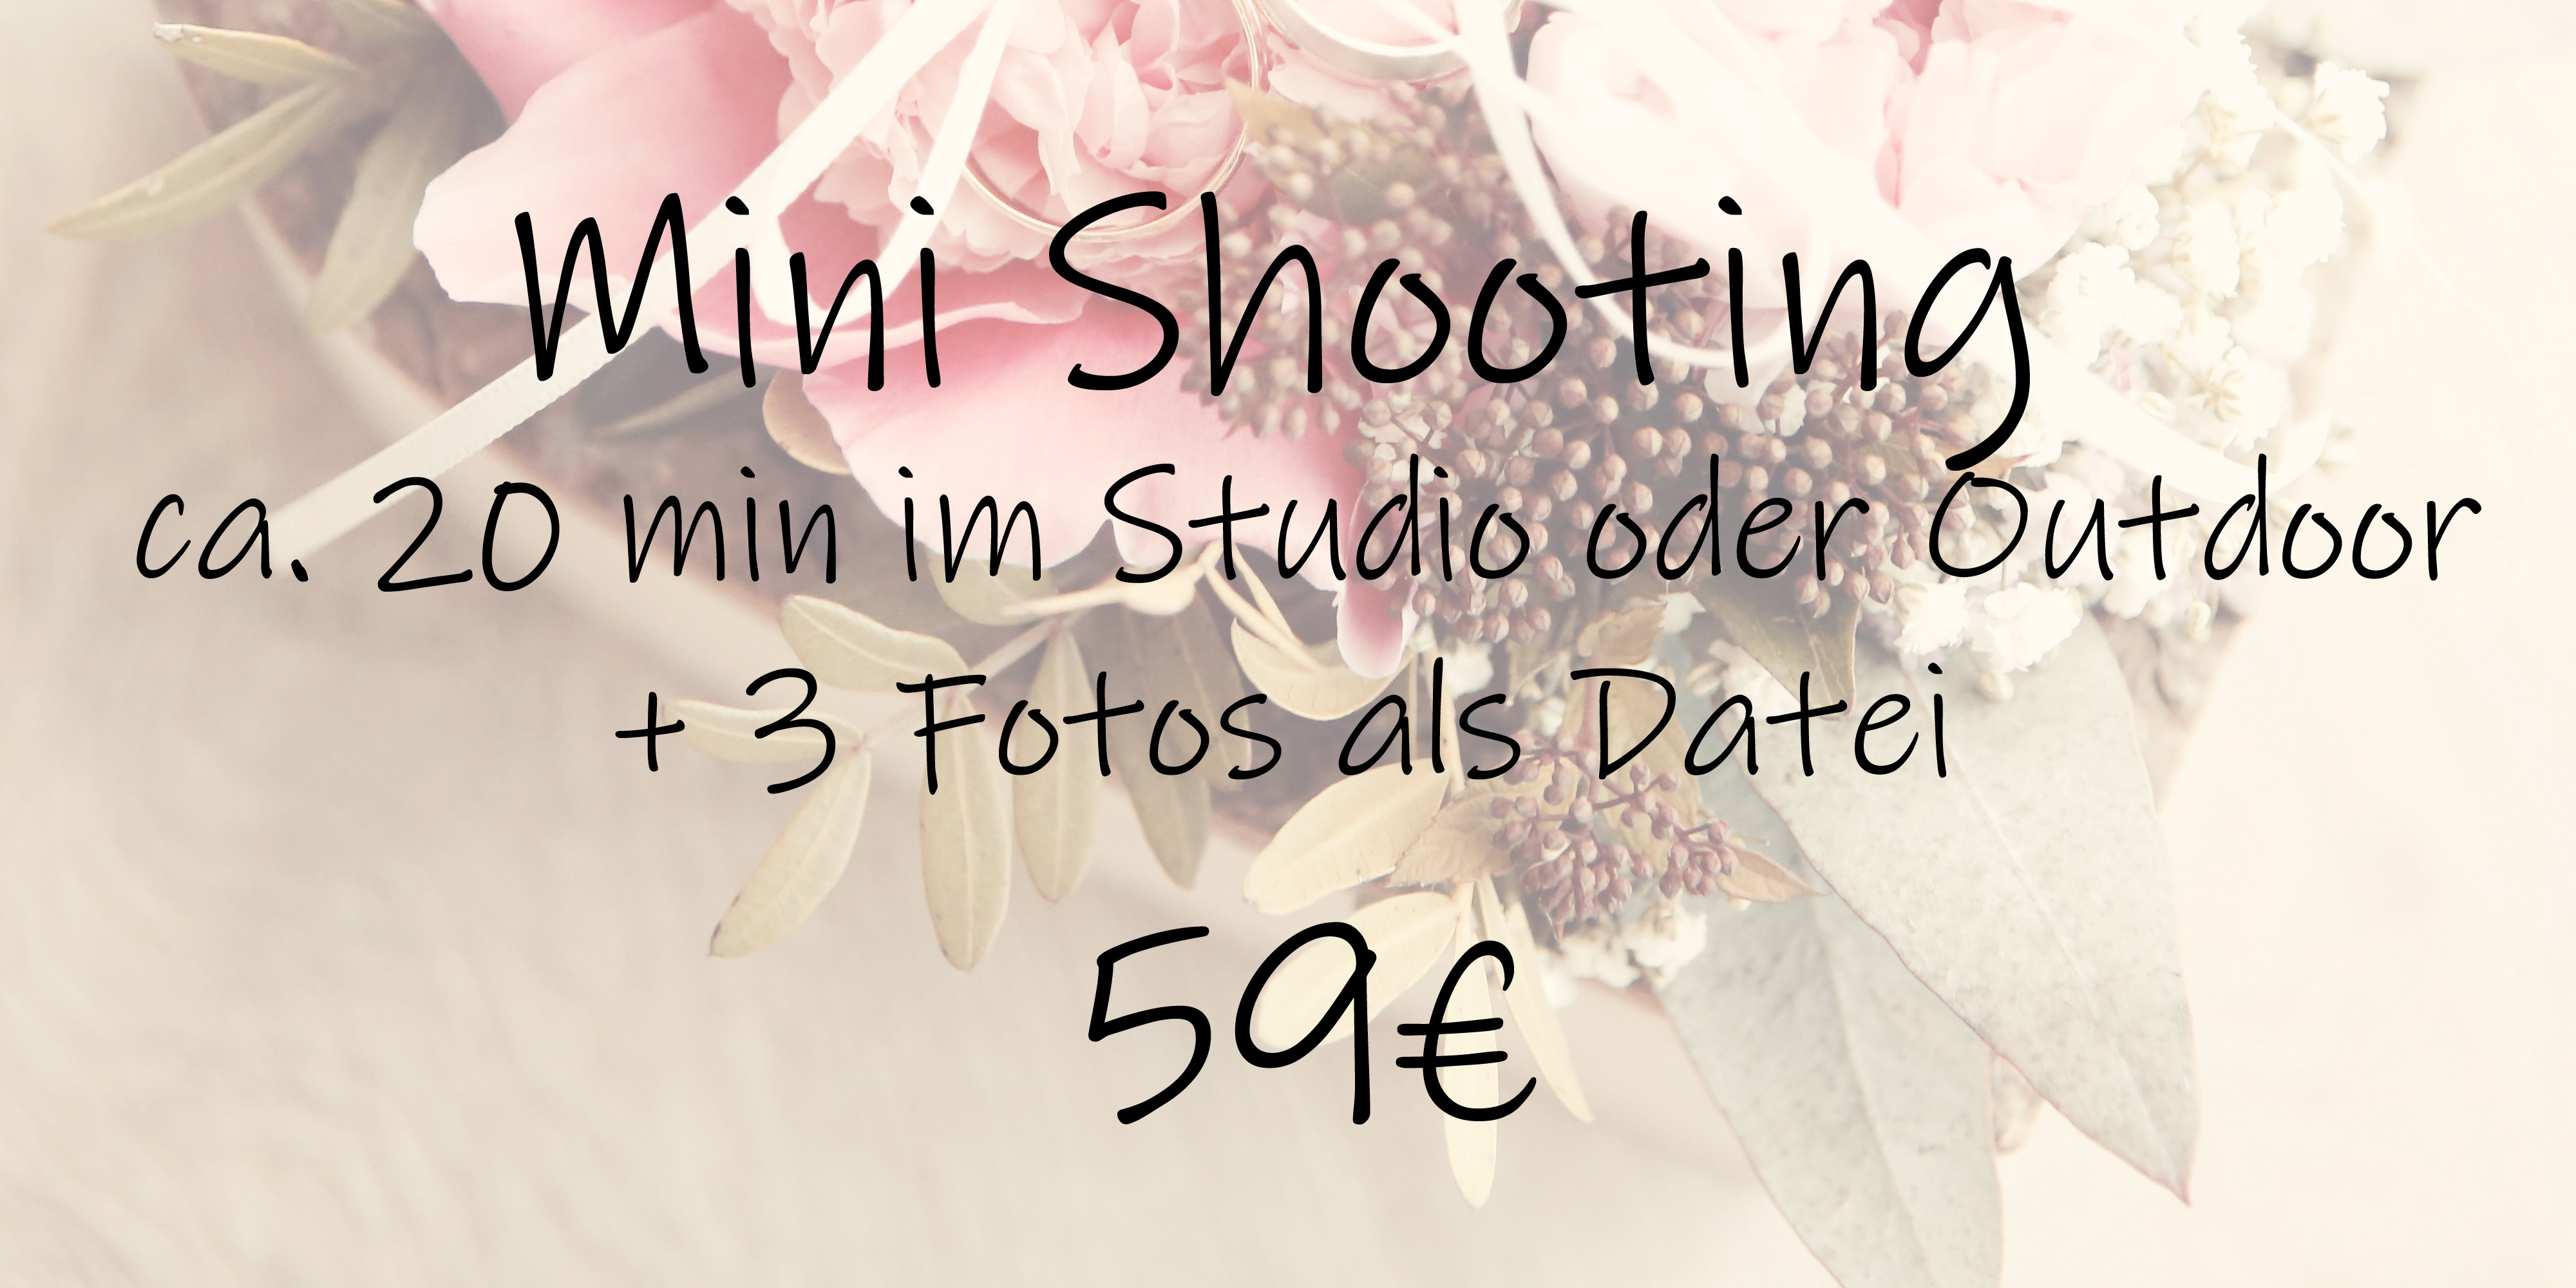 mini Shooting+